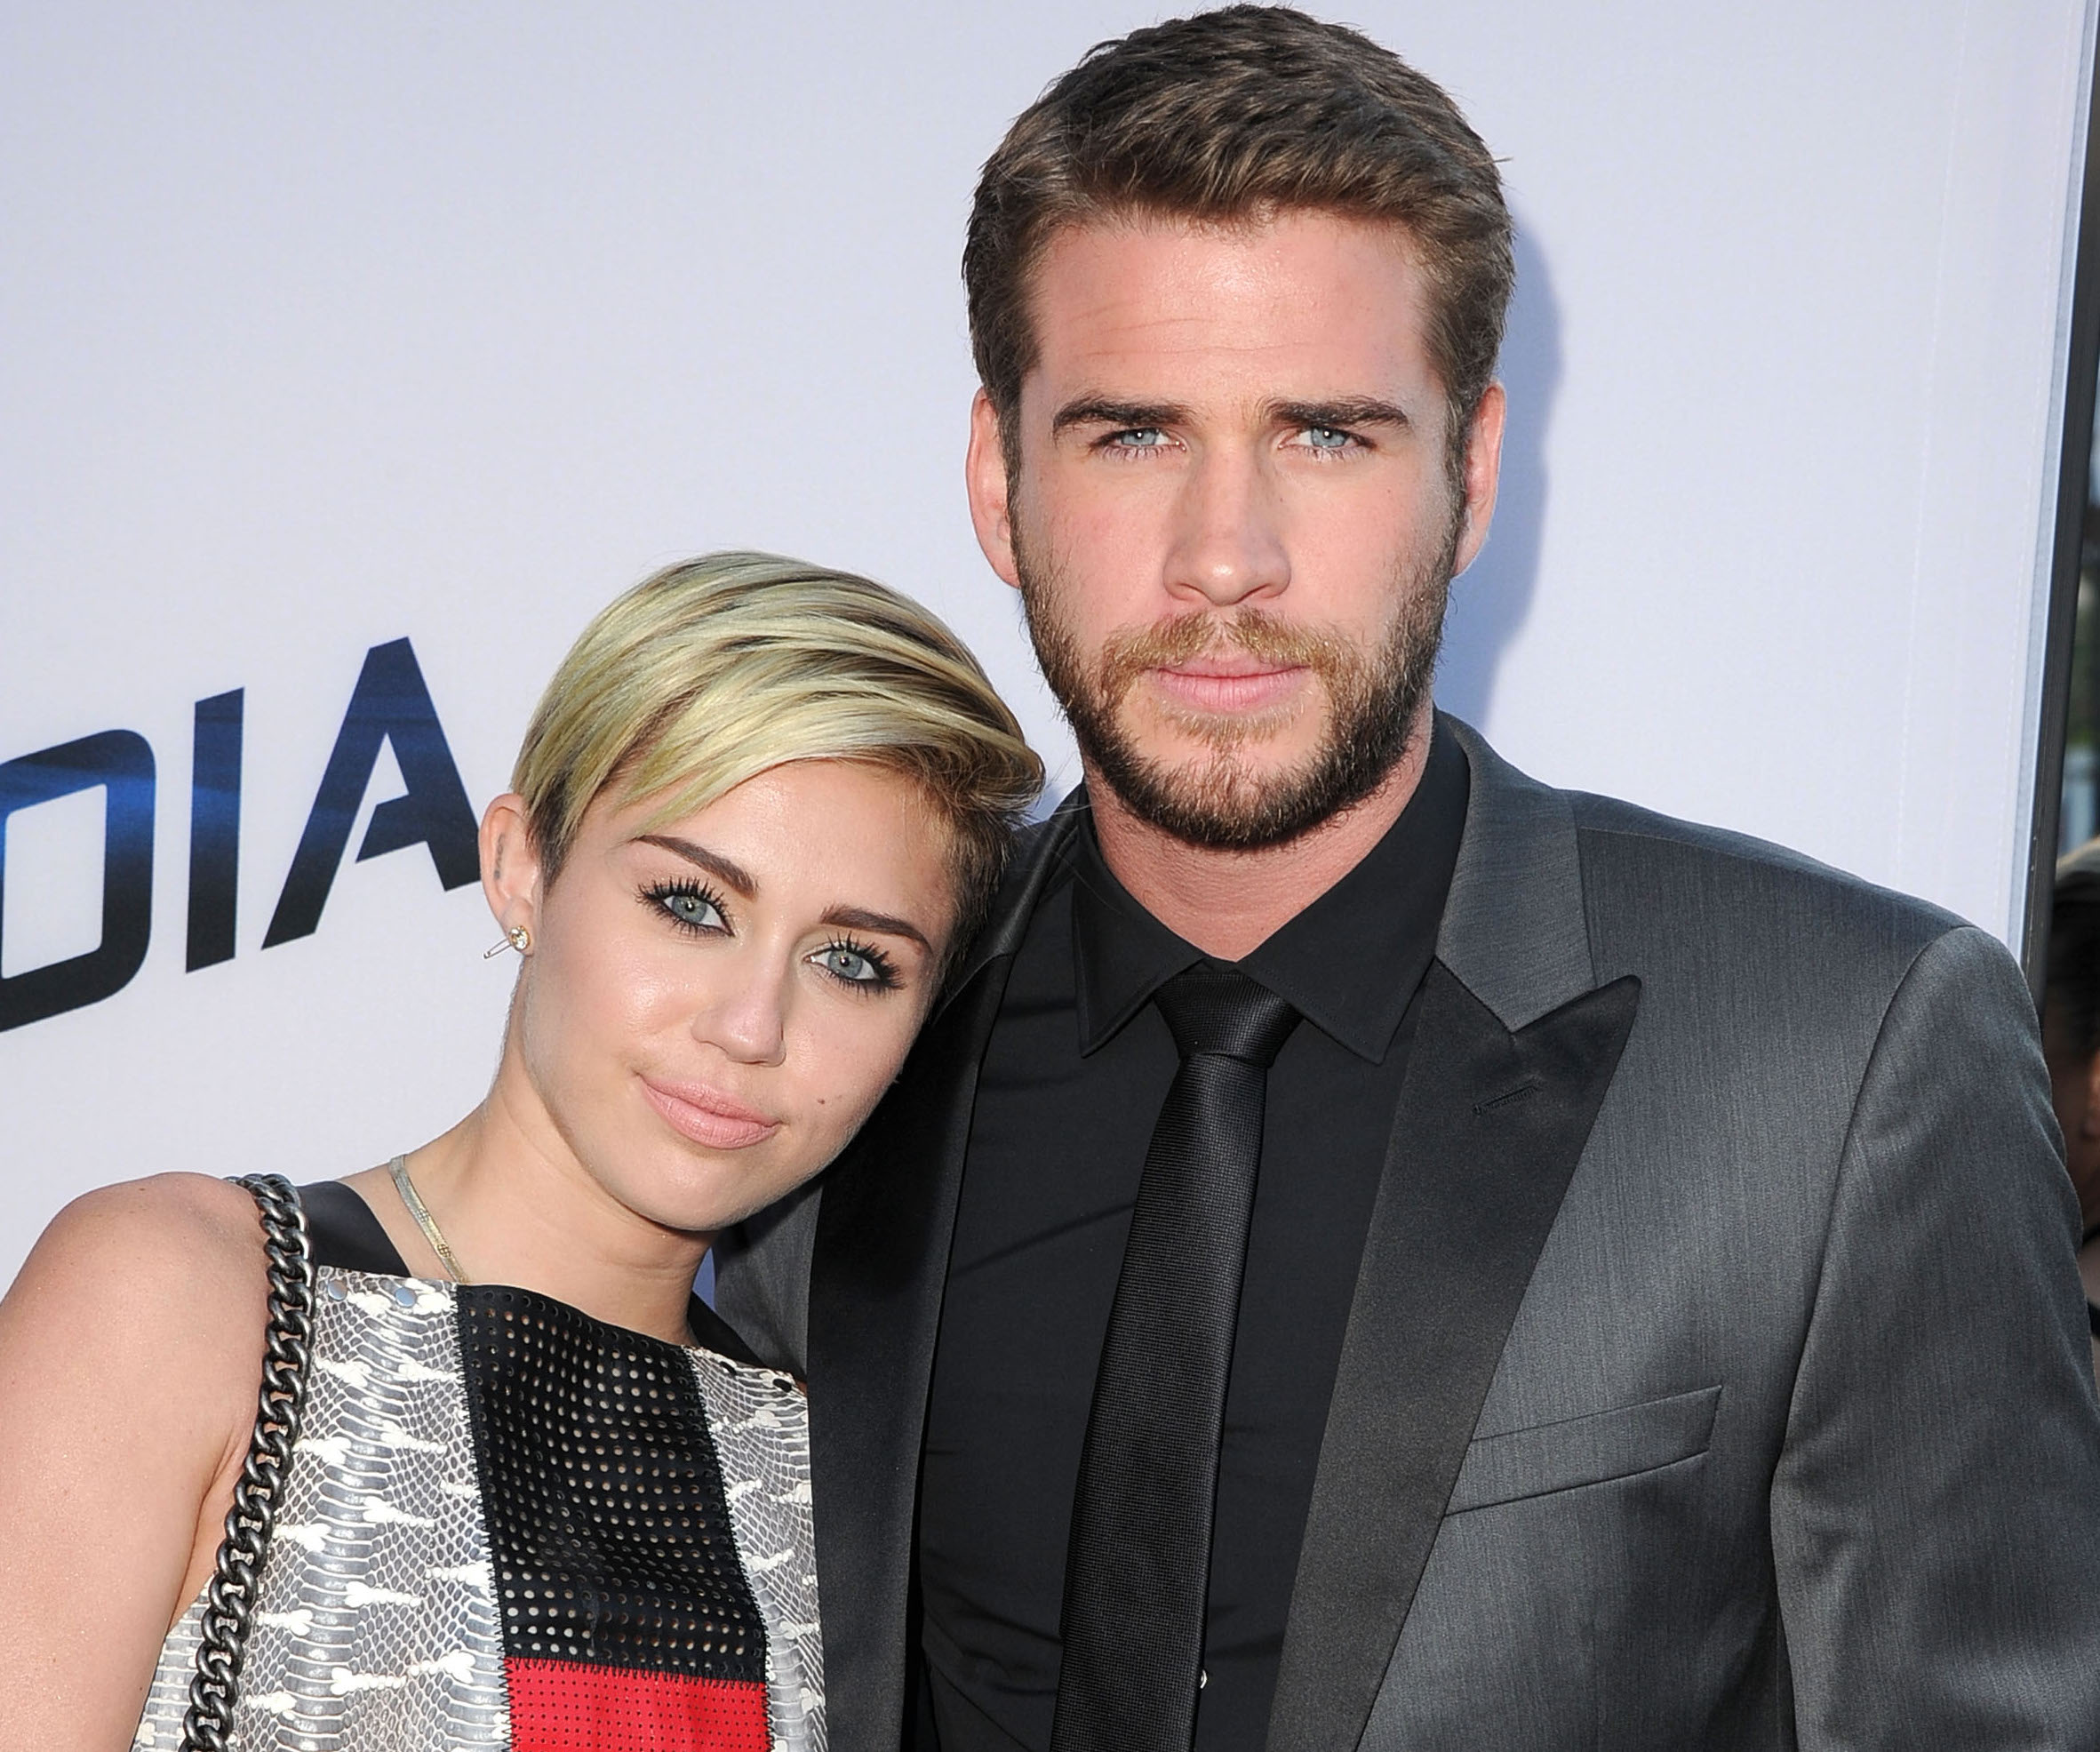 Liam Hemsworth just supported Miley Cyrus in the most heartwarming way